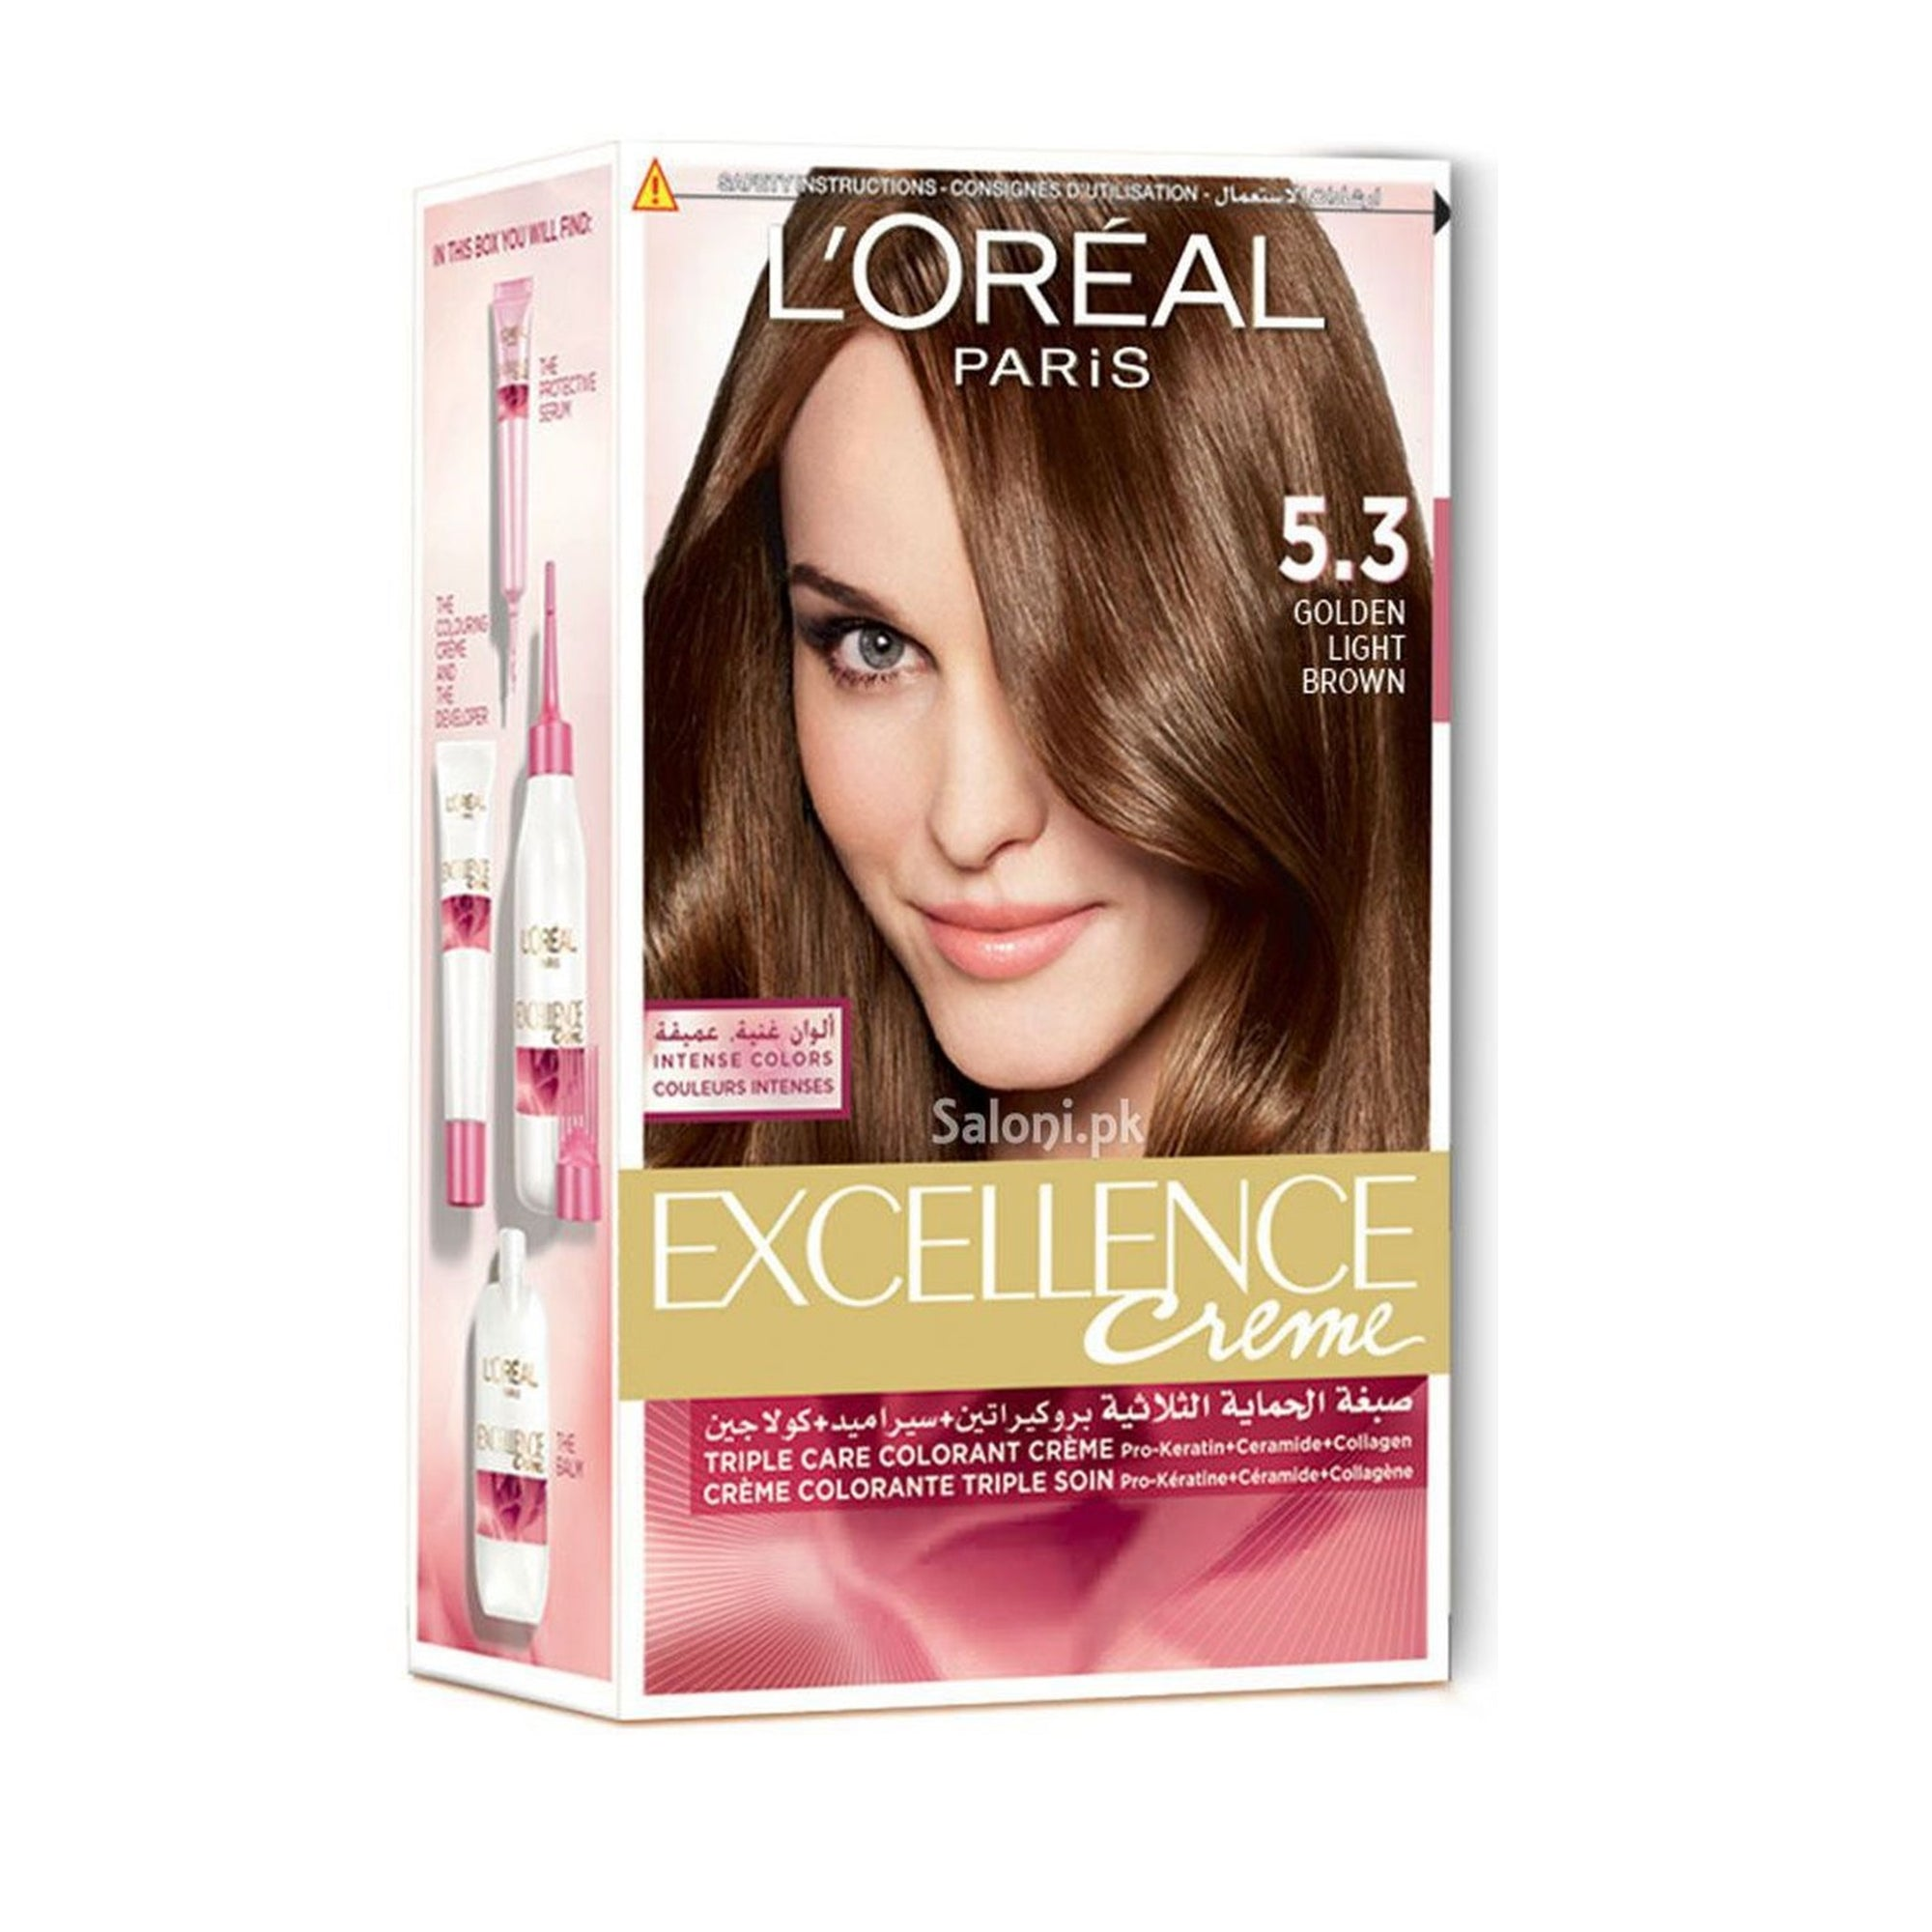 L'Oreal Hair Color #5.3 Golden Brown